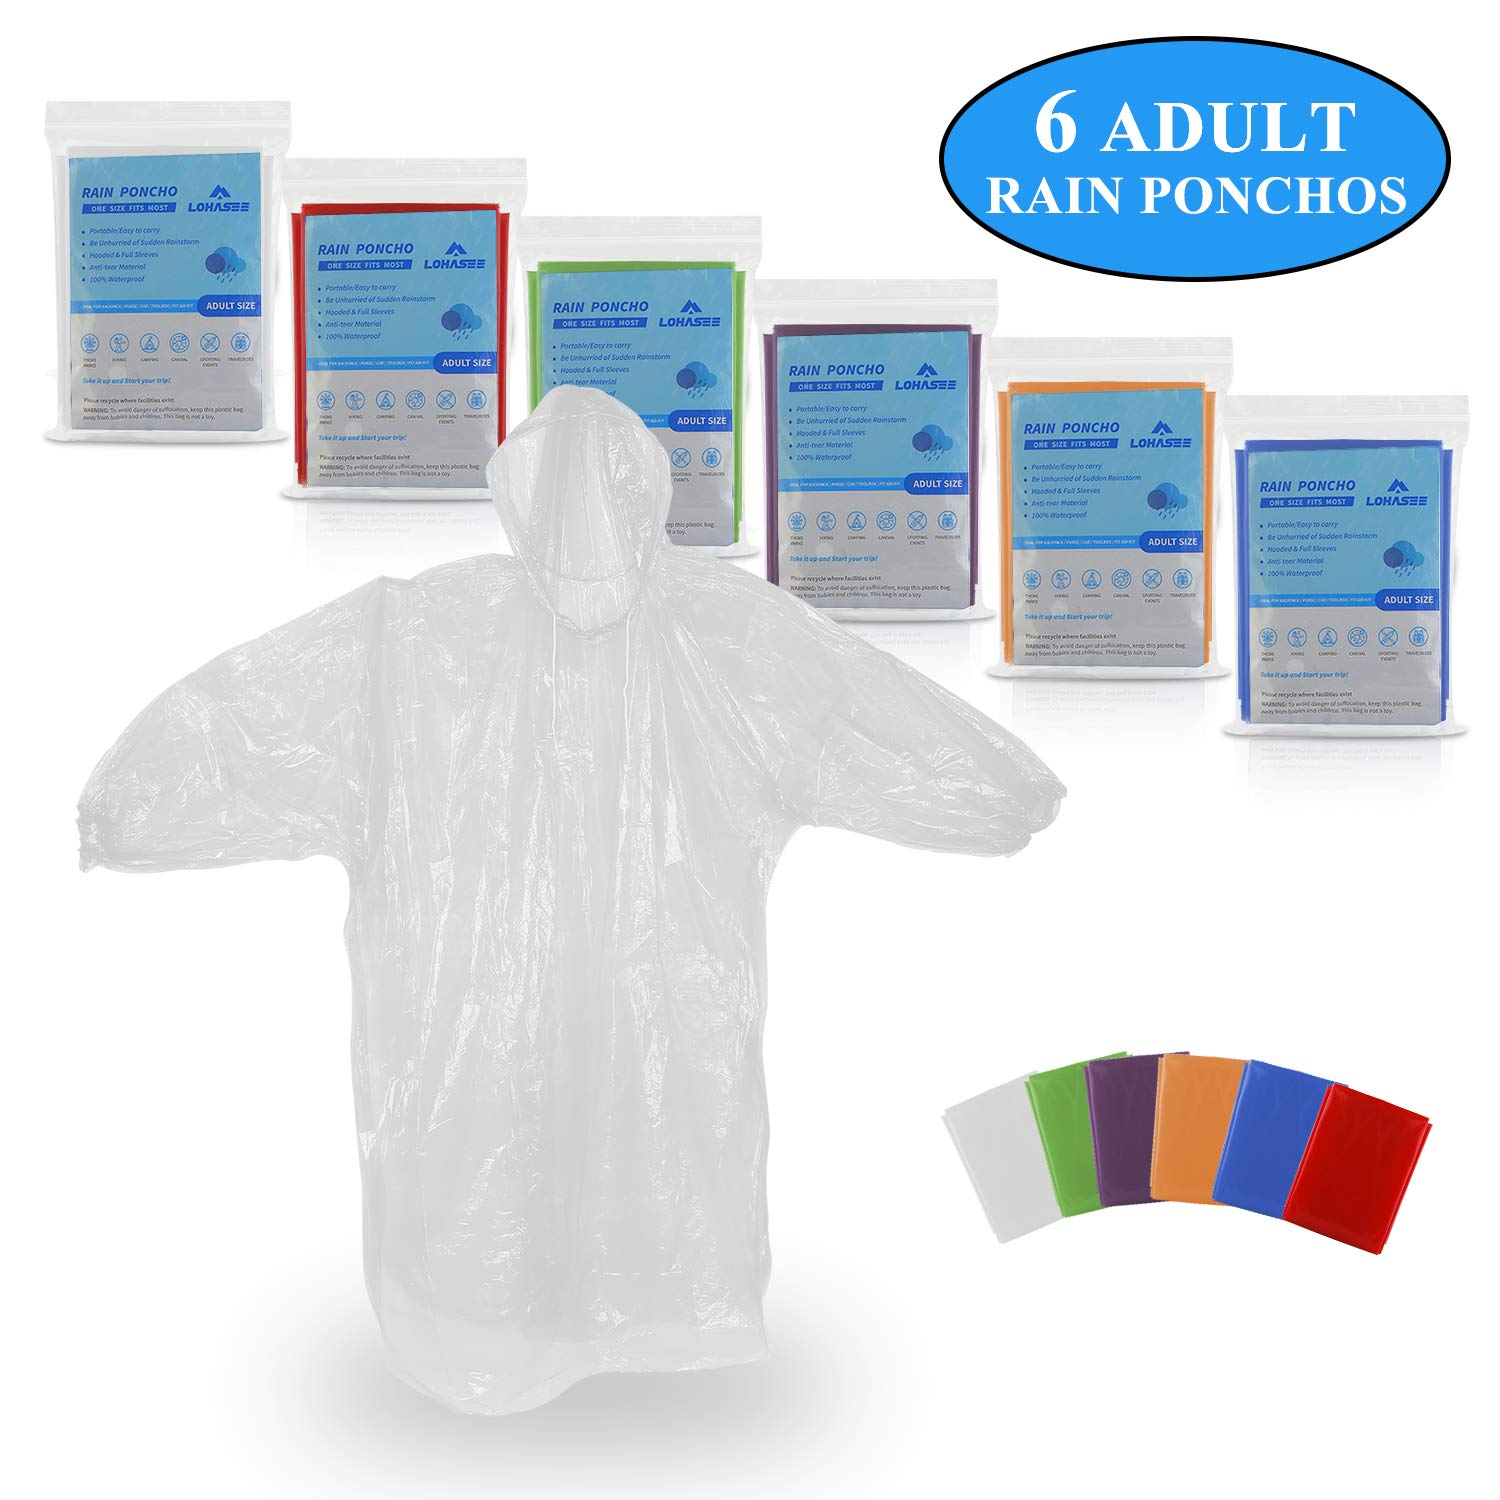 LOHASEE Disposable Rain Ponchos for Adults Size, Emergency Rain Coat with Hood and Elastic Sleeve Ends for Theme Park, Hiking, Camping or Traveling Assorted Colors (6 Pack)